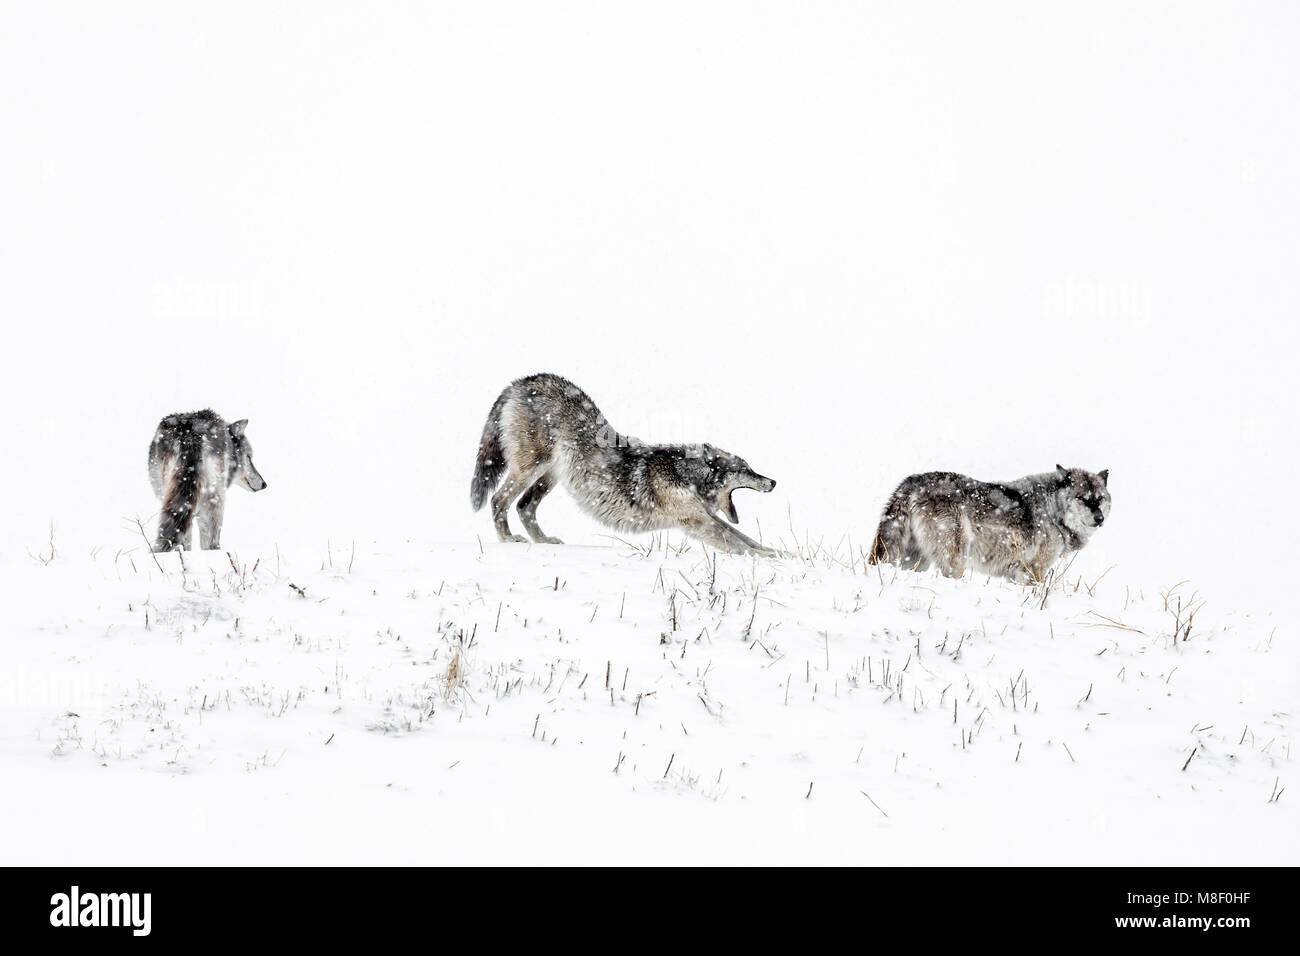 Grey Wolves also known as Timber Wolves, Canis lupis, Manitoba, Canada. Stock Photo